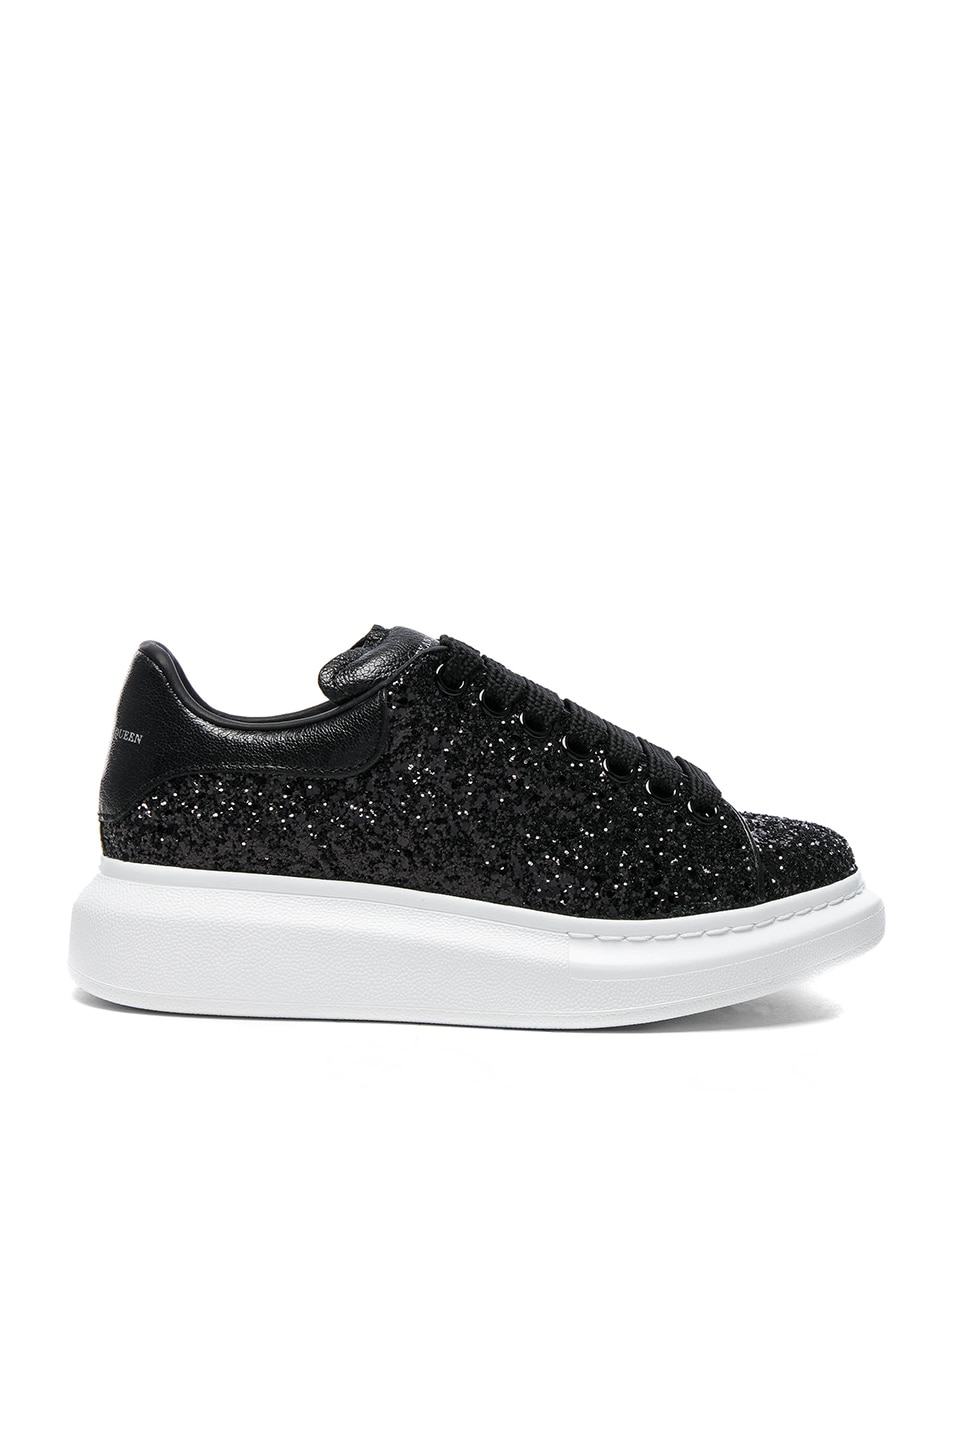 Image 1 of Alexander McQueen Platform Lace Up Sneakers in Black & Black